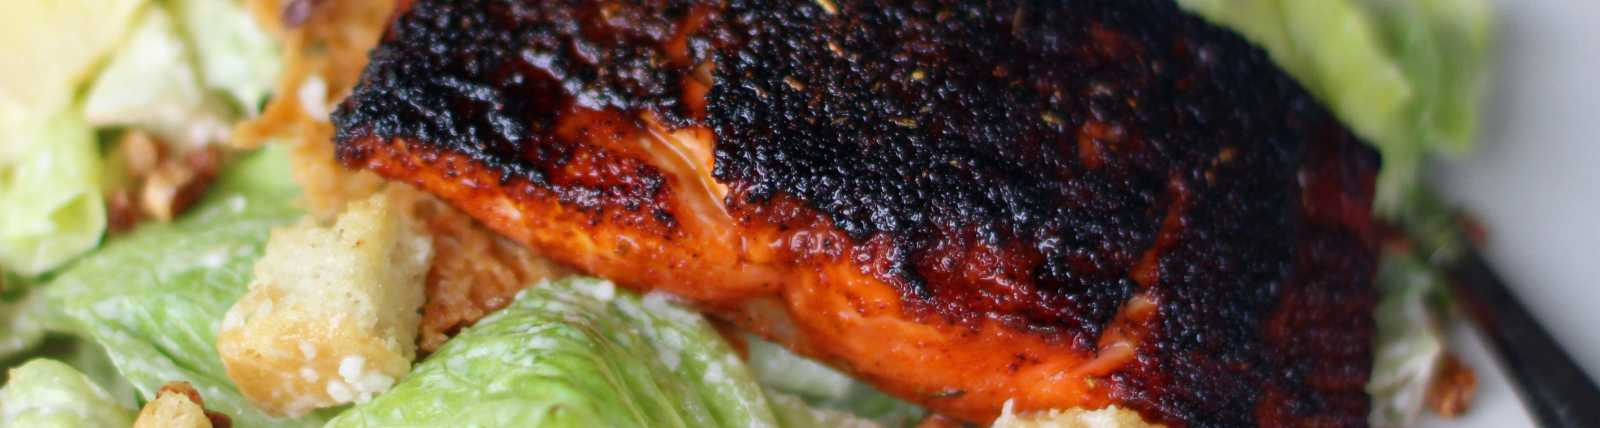 Blackened Salmon on Caesar by Celeste Stubner